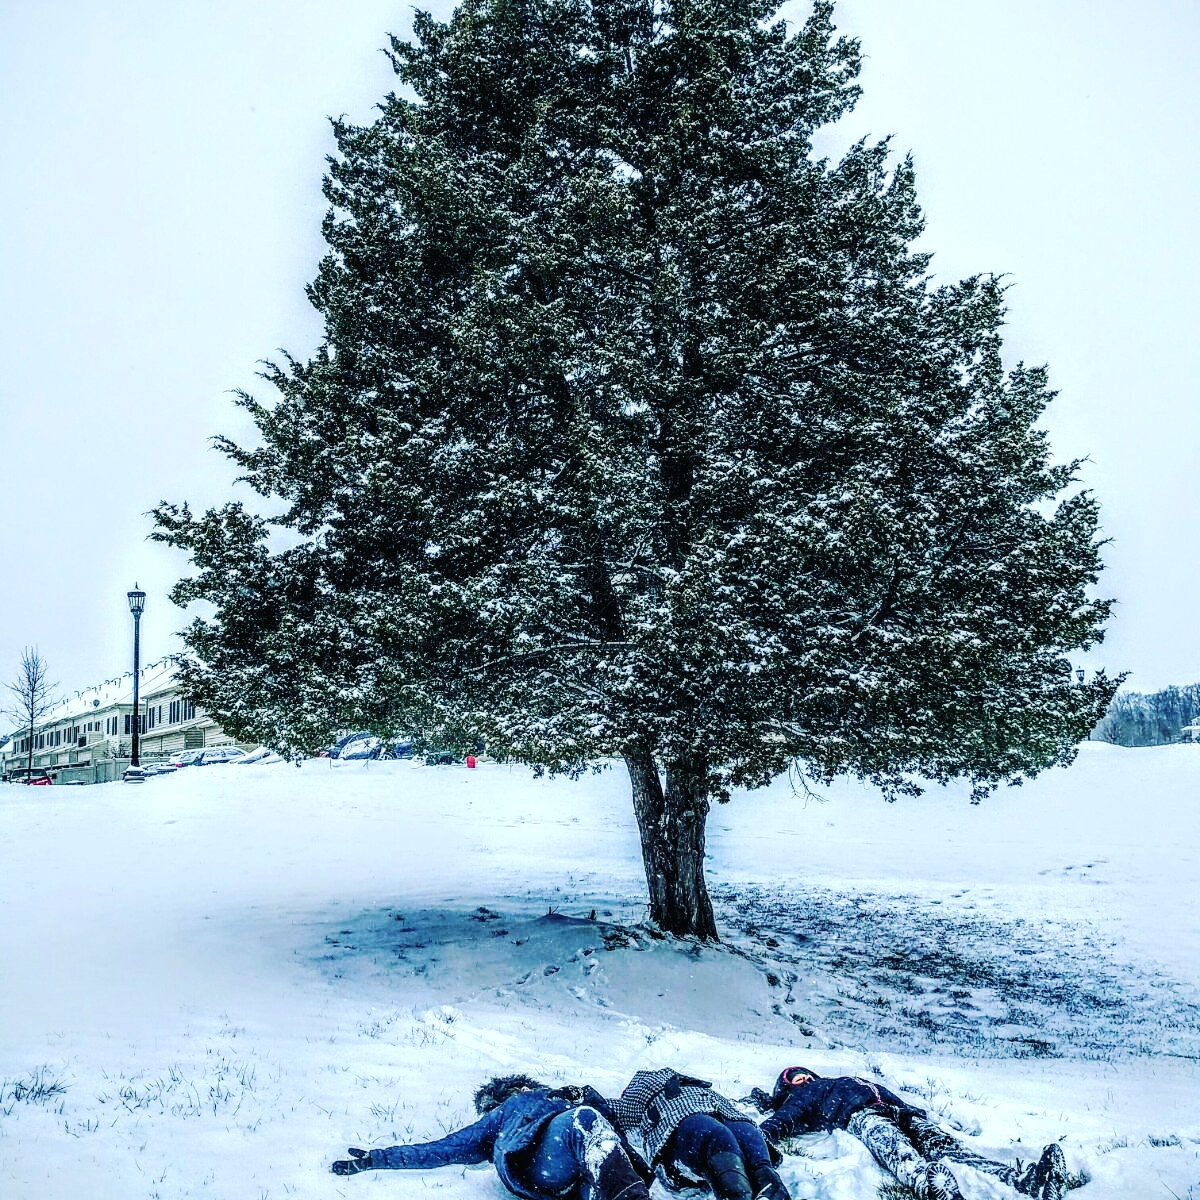 lie down in the snow